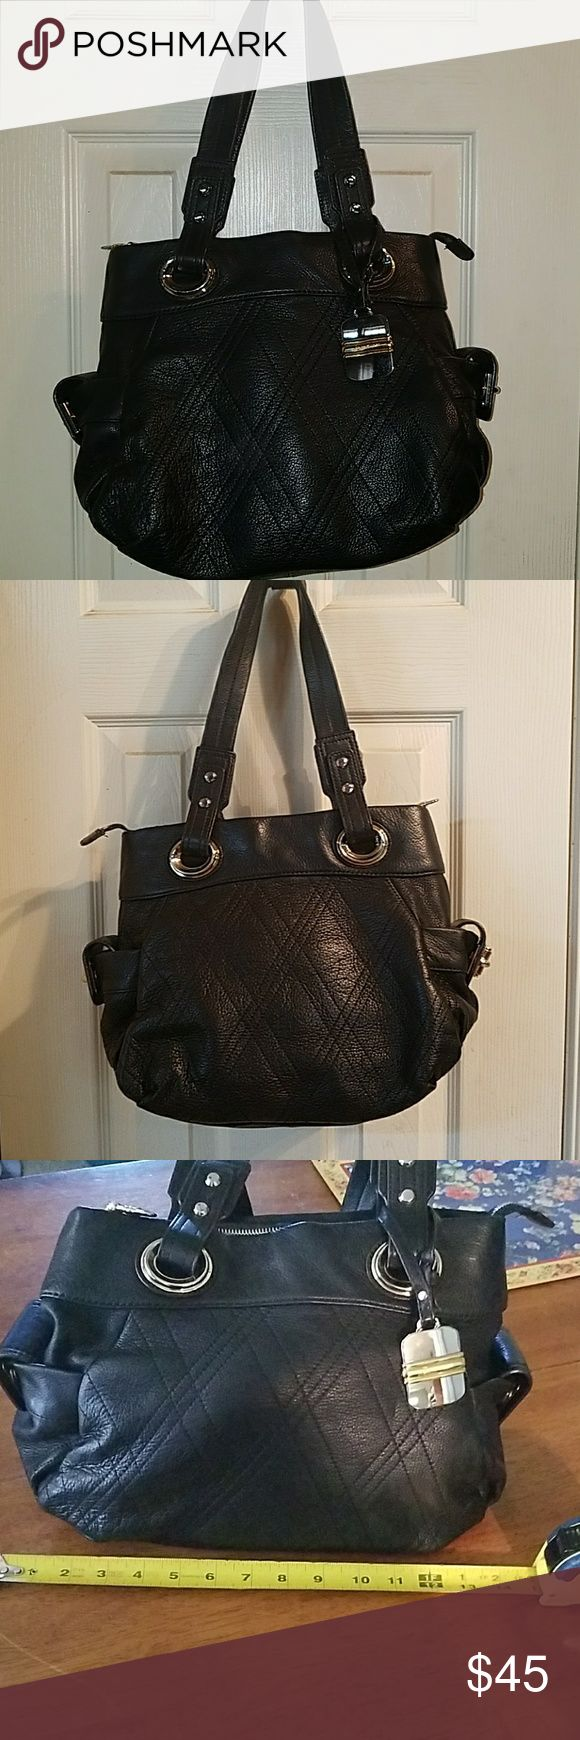 B MAKOWSKY BLACK LEATHER PURSE.  IMMACULATE Black leather B makowsky handbag in like new condition. All brass grommets and zipper this is a high-quality purse that has never been carried and has no flaws. You can see the measurements on the pictures B Makowsky Bags